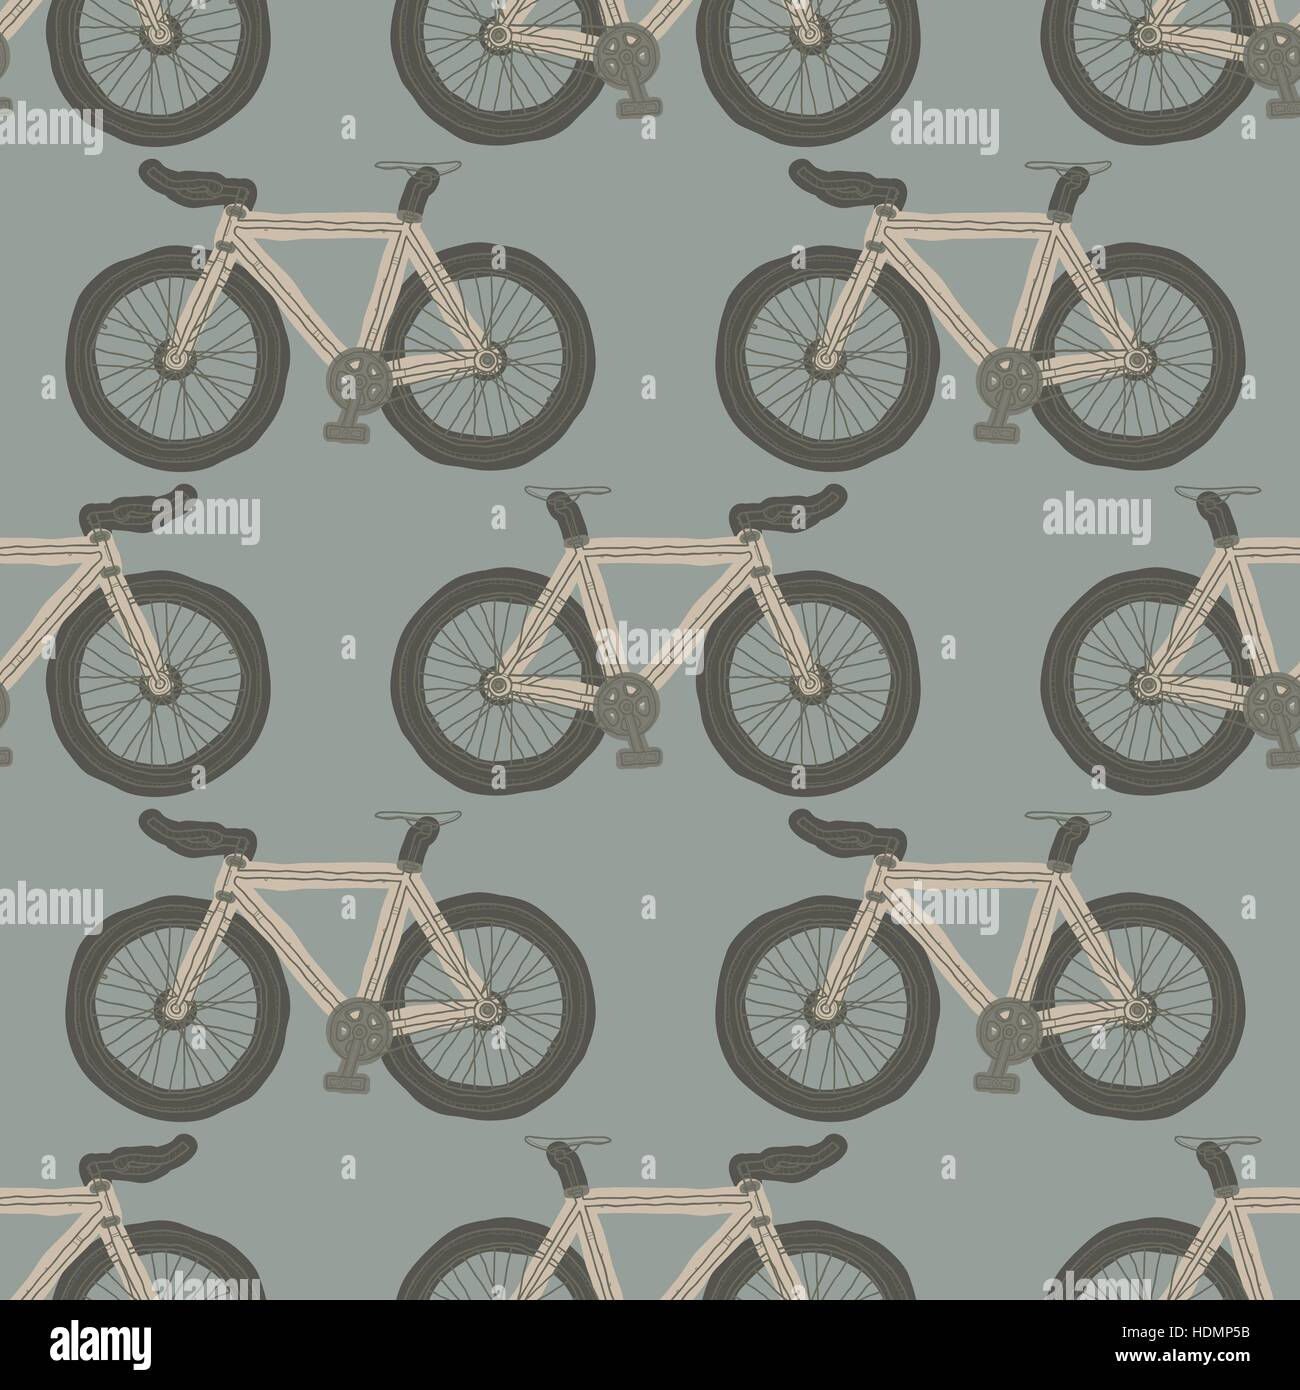 Hand Drawn Single Speed Fixed Gear Bicycle Seamless Pattern For